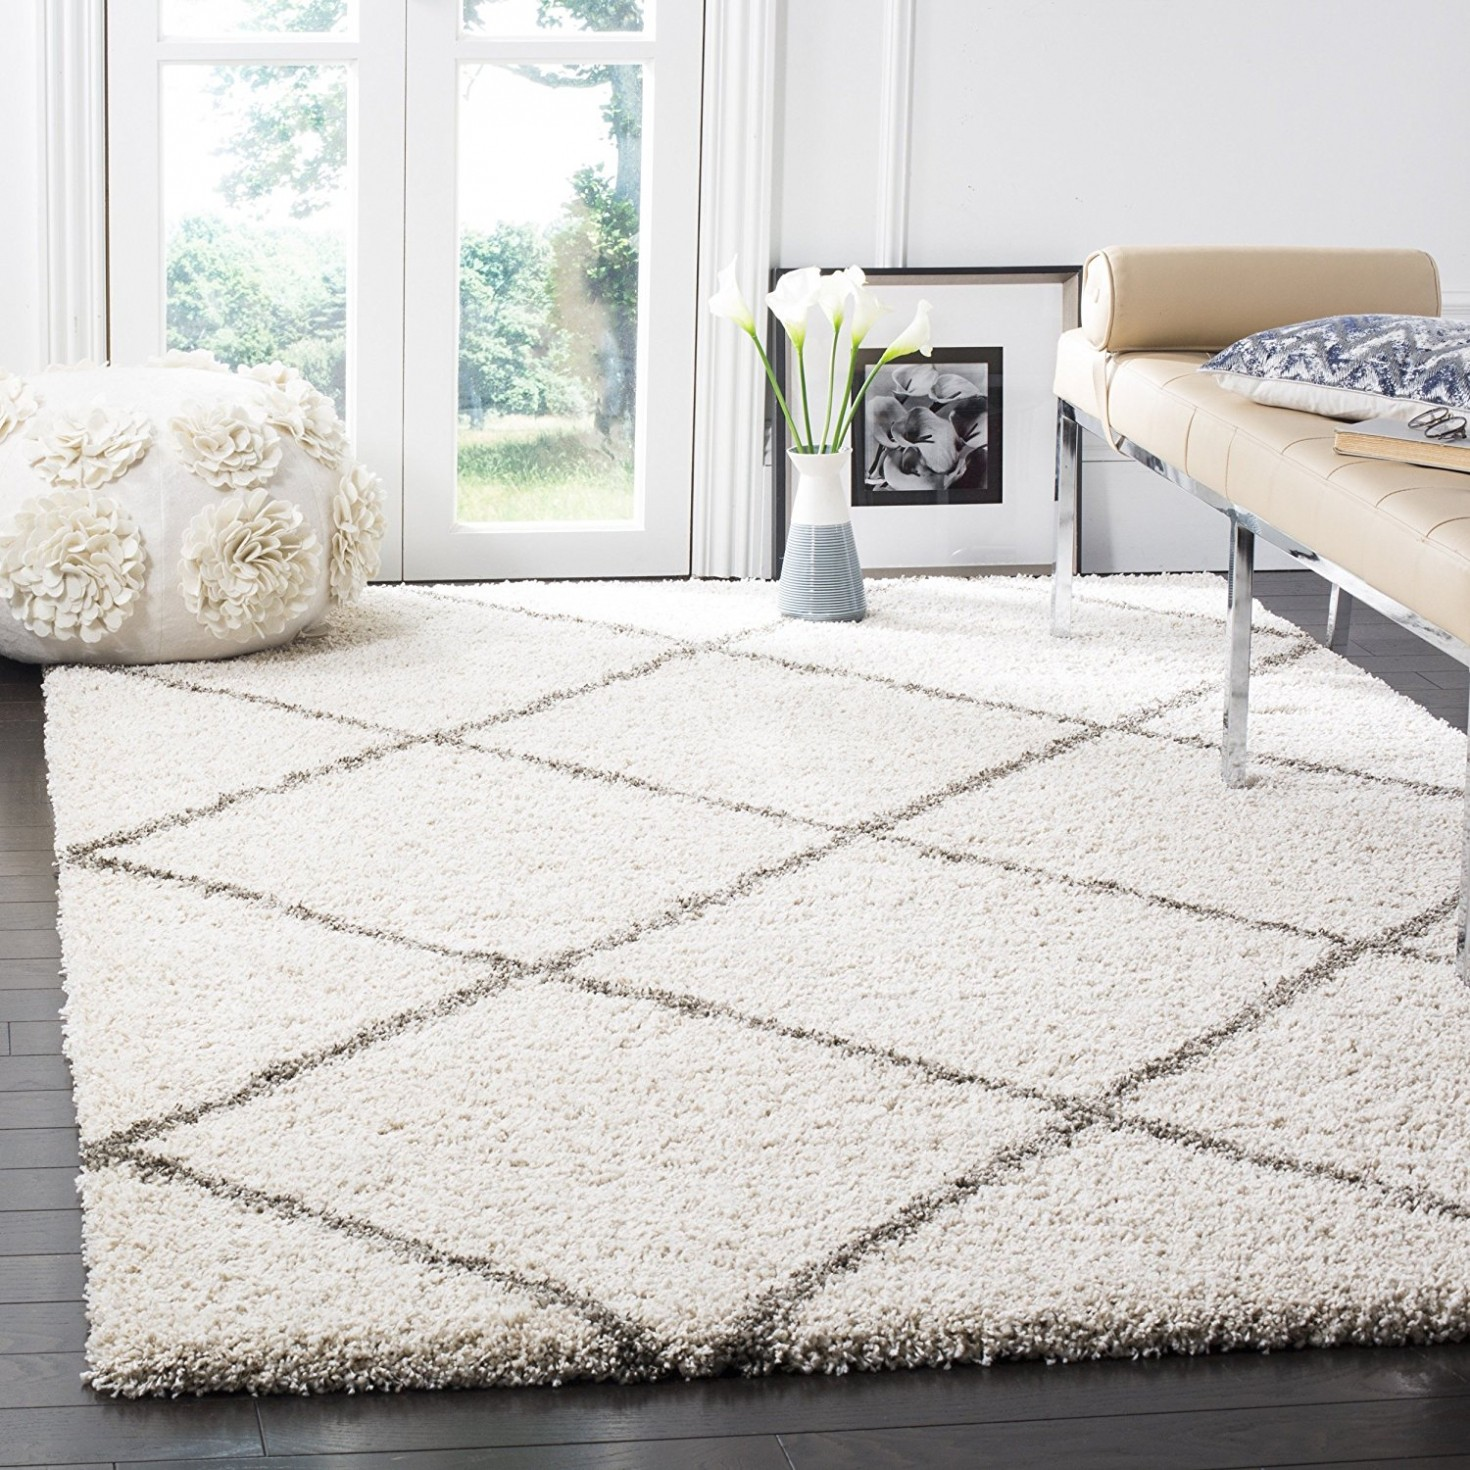 Cheap Area Rugs 5x8